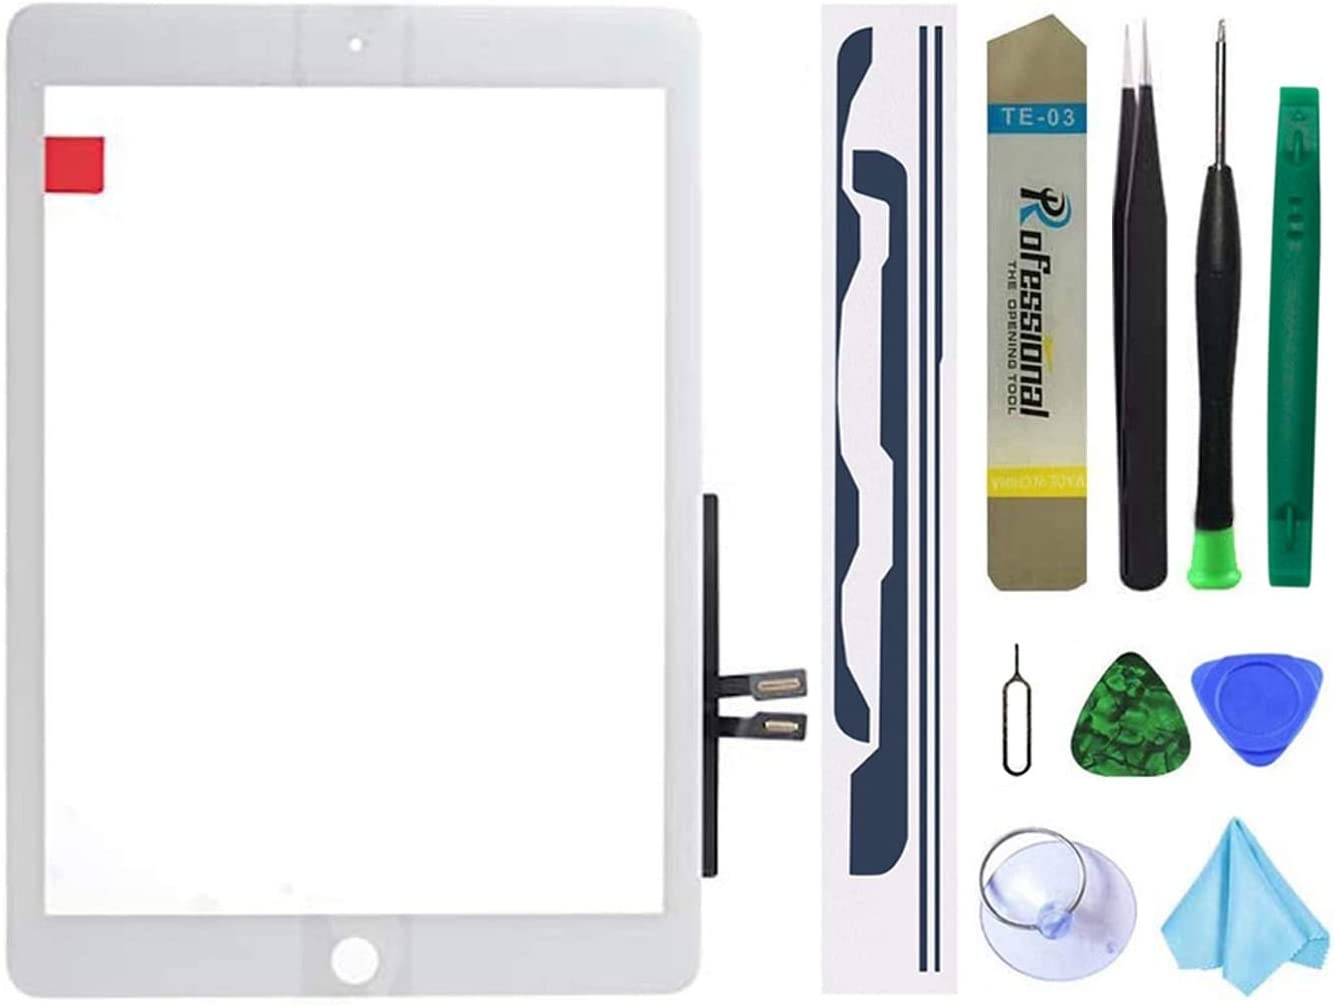 Dedia White Touch Screen Replacement Parts Digitizer Glass Assembly for iPad 6 6th Generation 2018 9.7inch (A1893 A1954) Without Home Button+Pre-Installed Adhesive +Professional Tool Kit